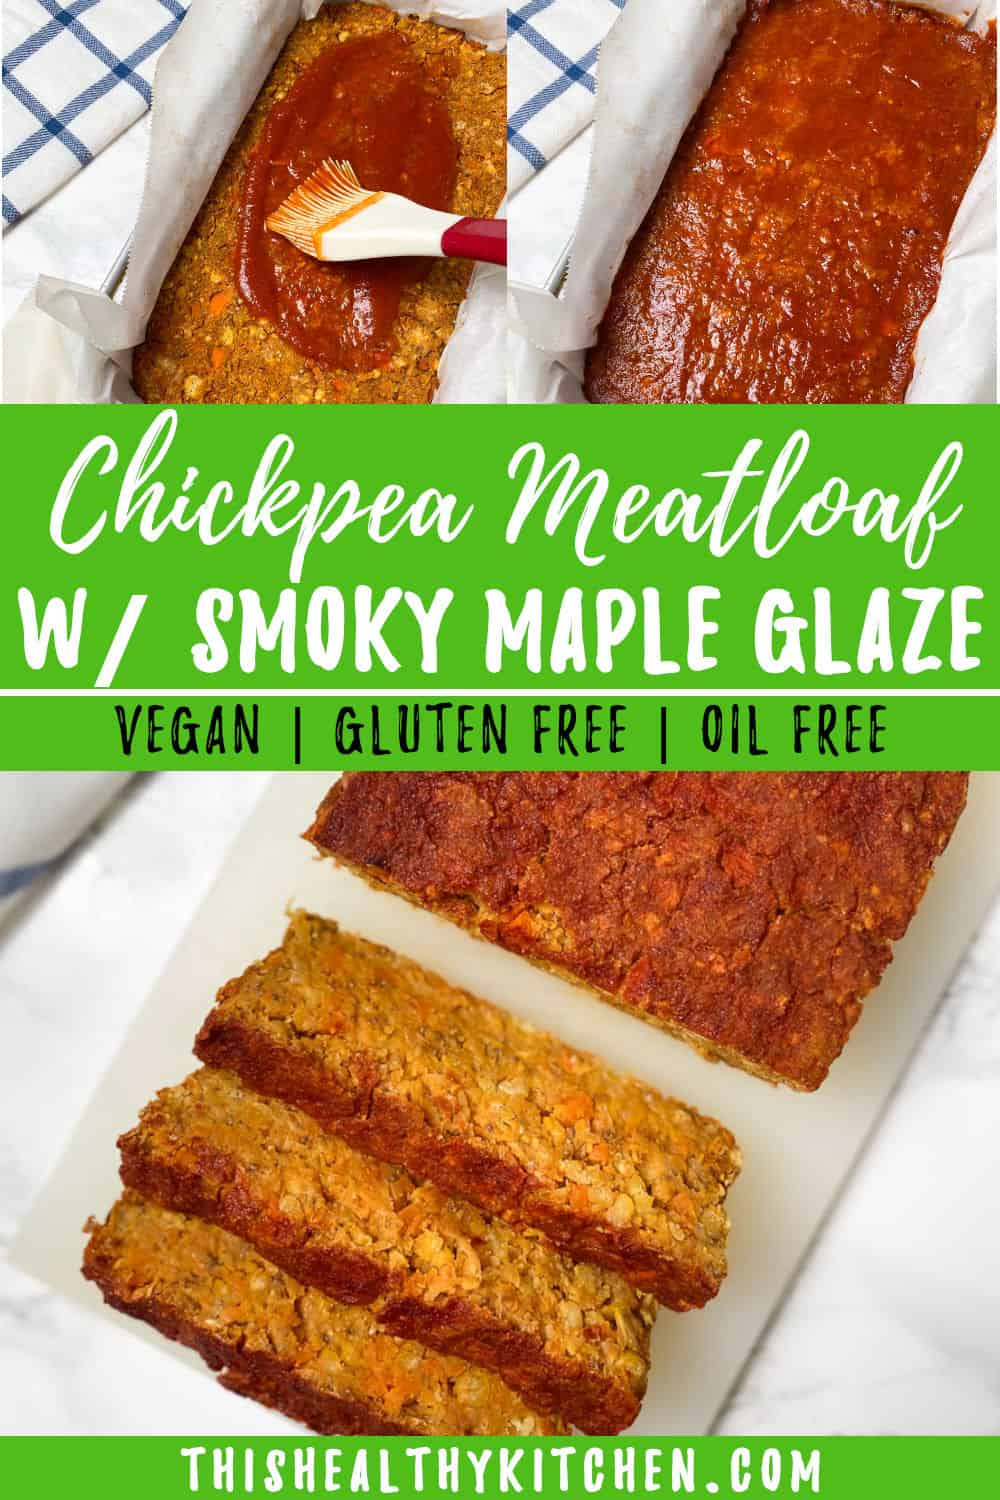 Learn How To Make This Easy Vegan And Vegetarian Meatloaf That Is The Perfect Main Course For A Meatless Meal Meatloaf Vegetarian Meatloaf Whole Food Recipes